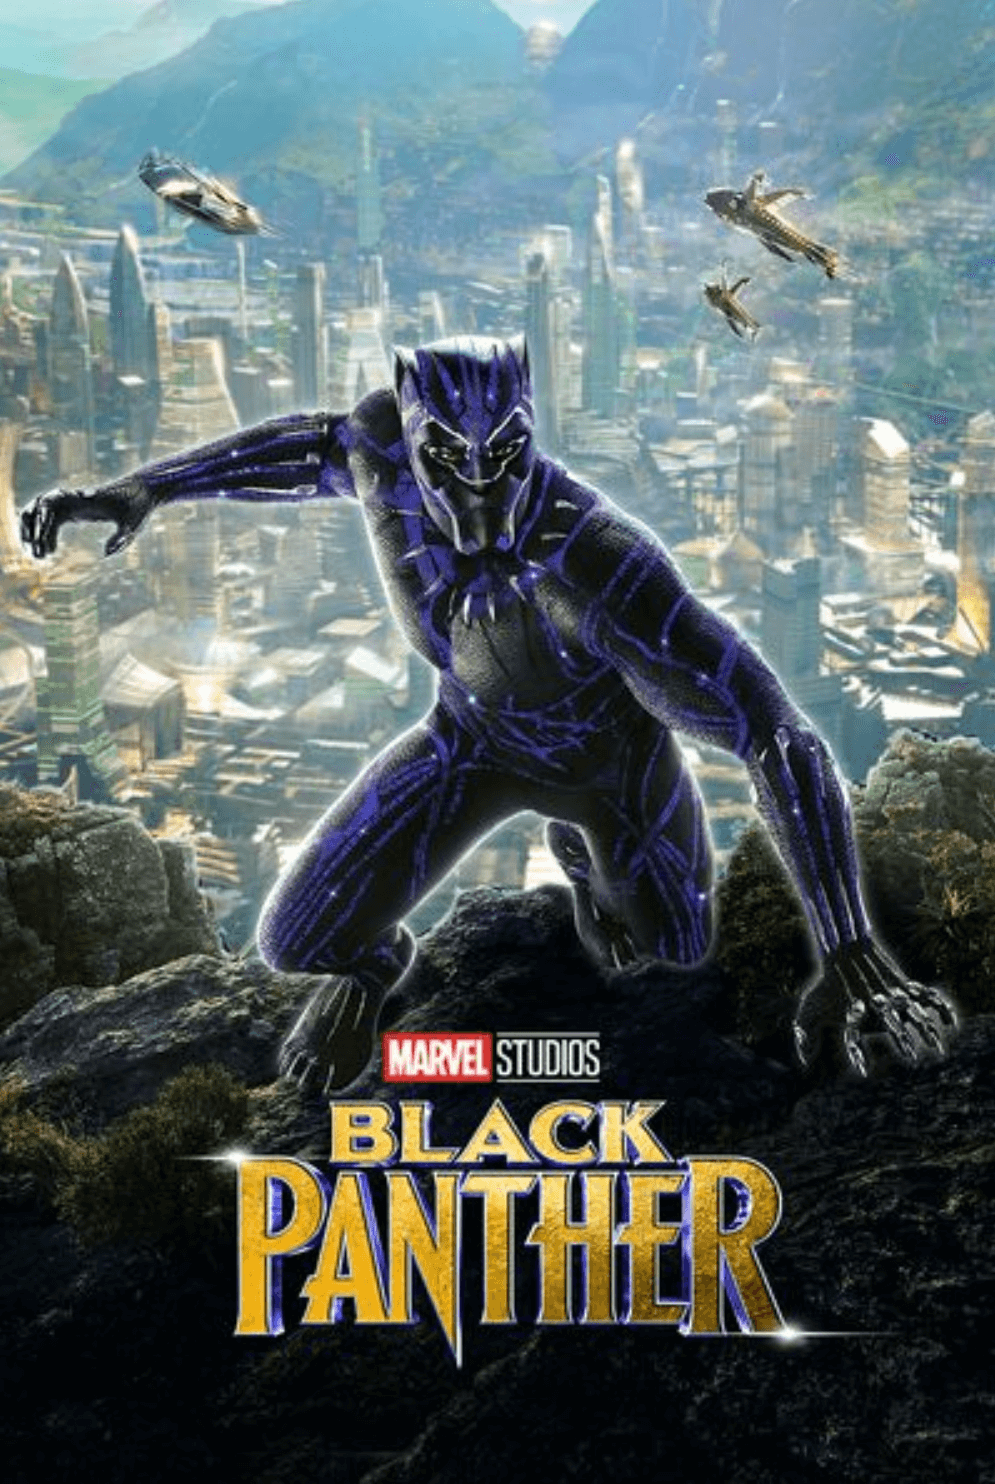 black panther hollywood movie download in english